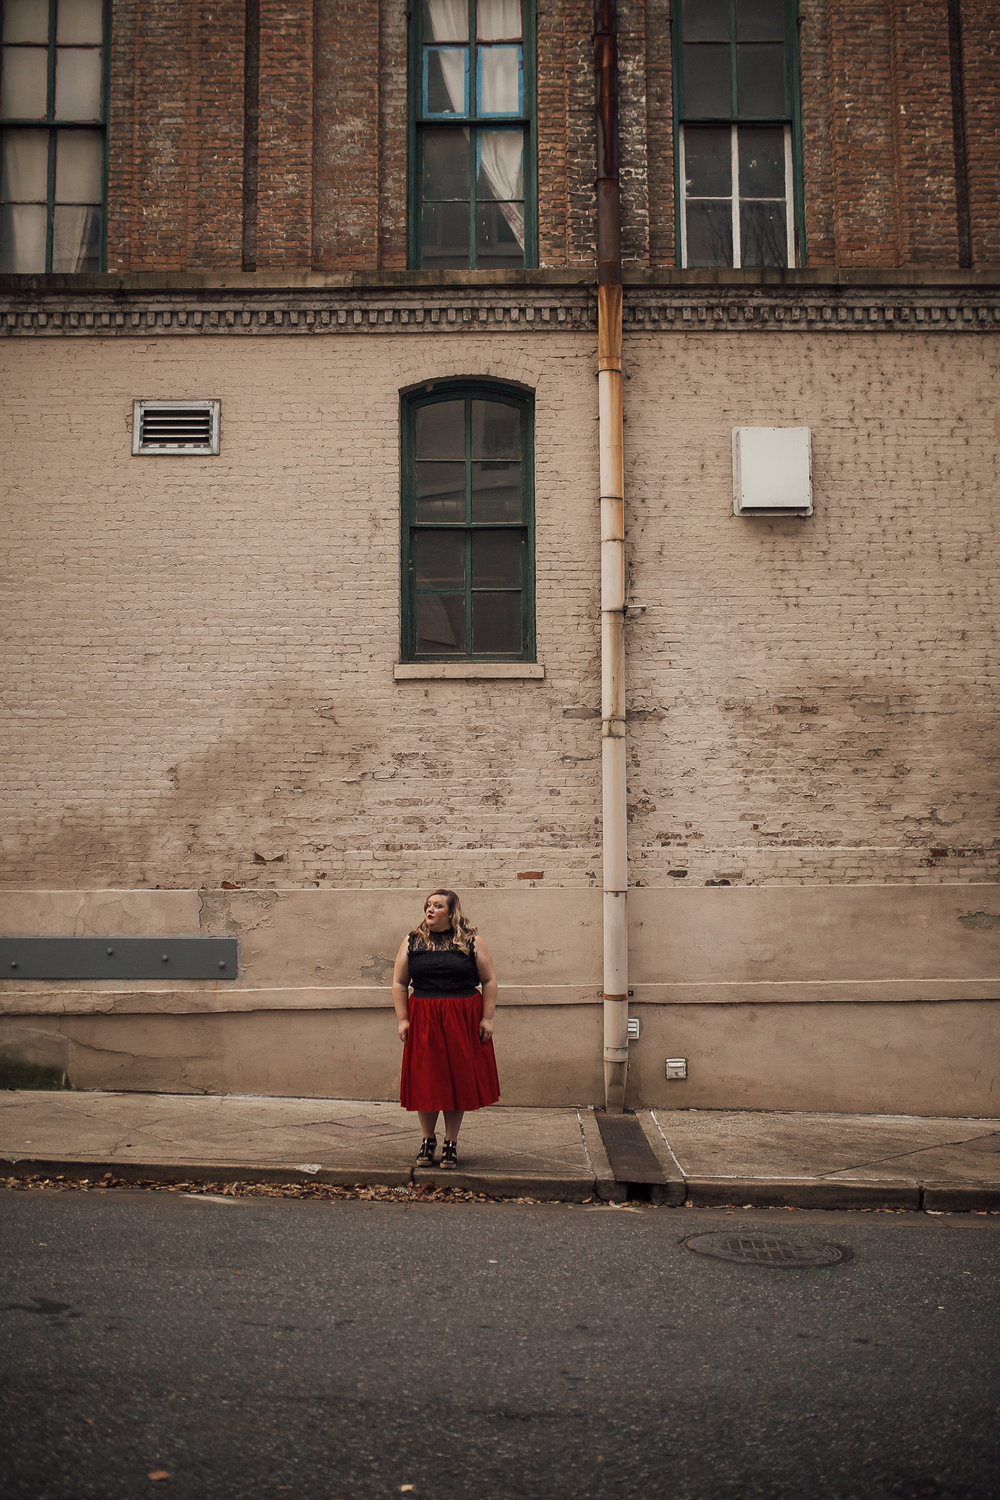 memphis-portrait-photographer-tamp-and-tap-cassie-cook-photography